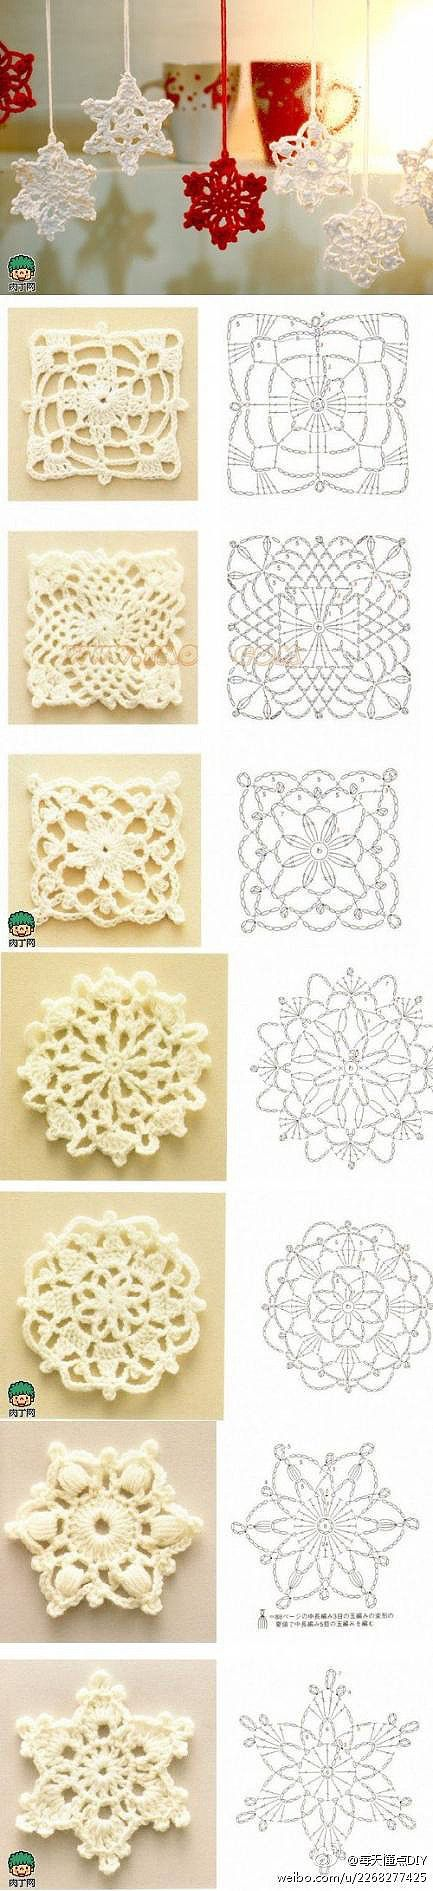 Snowflakes crochet patterns - Patrones de ganchillo copos de nieve ...